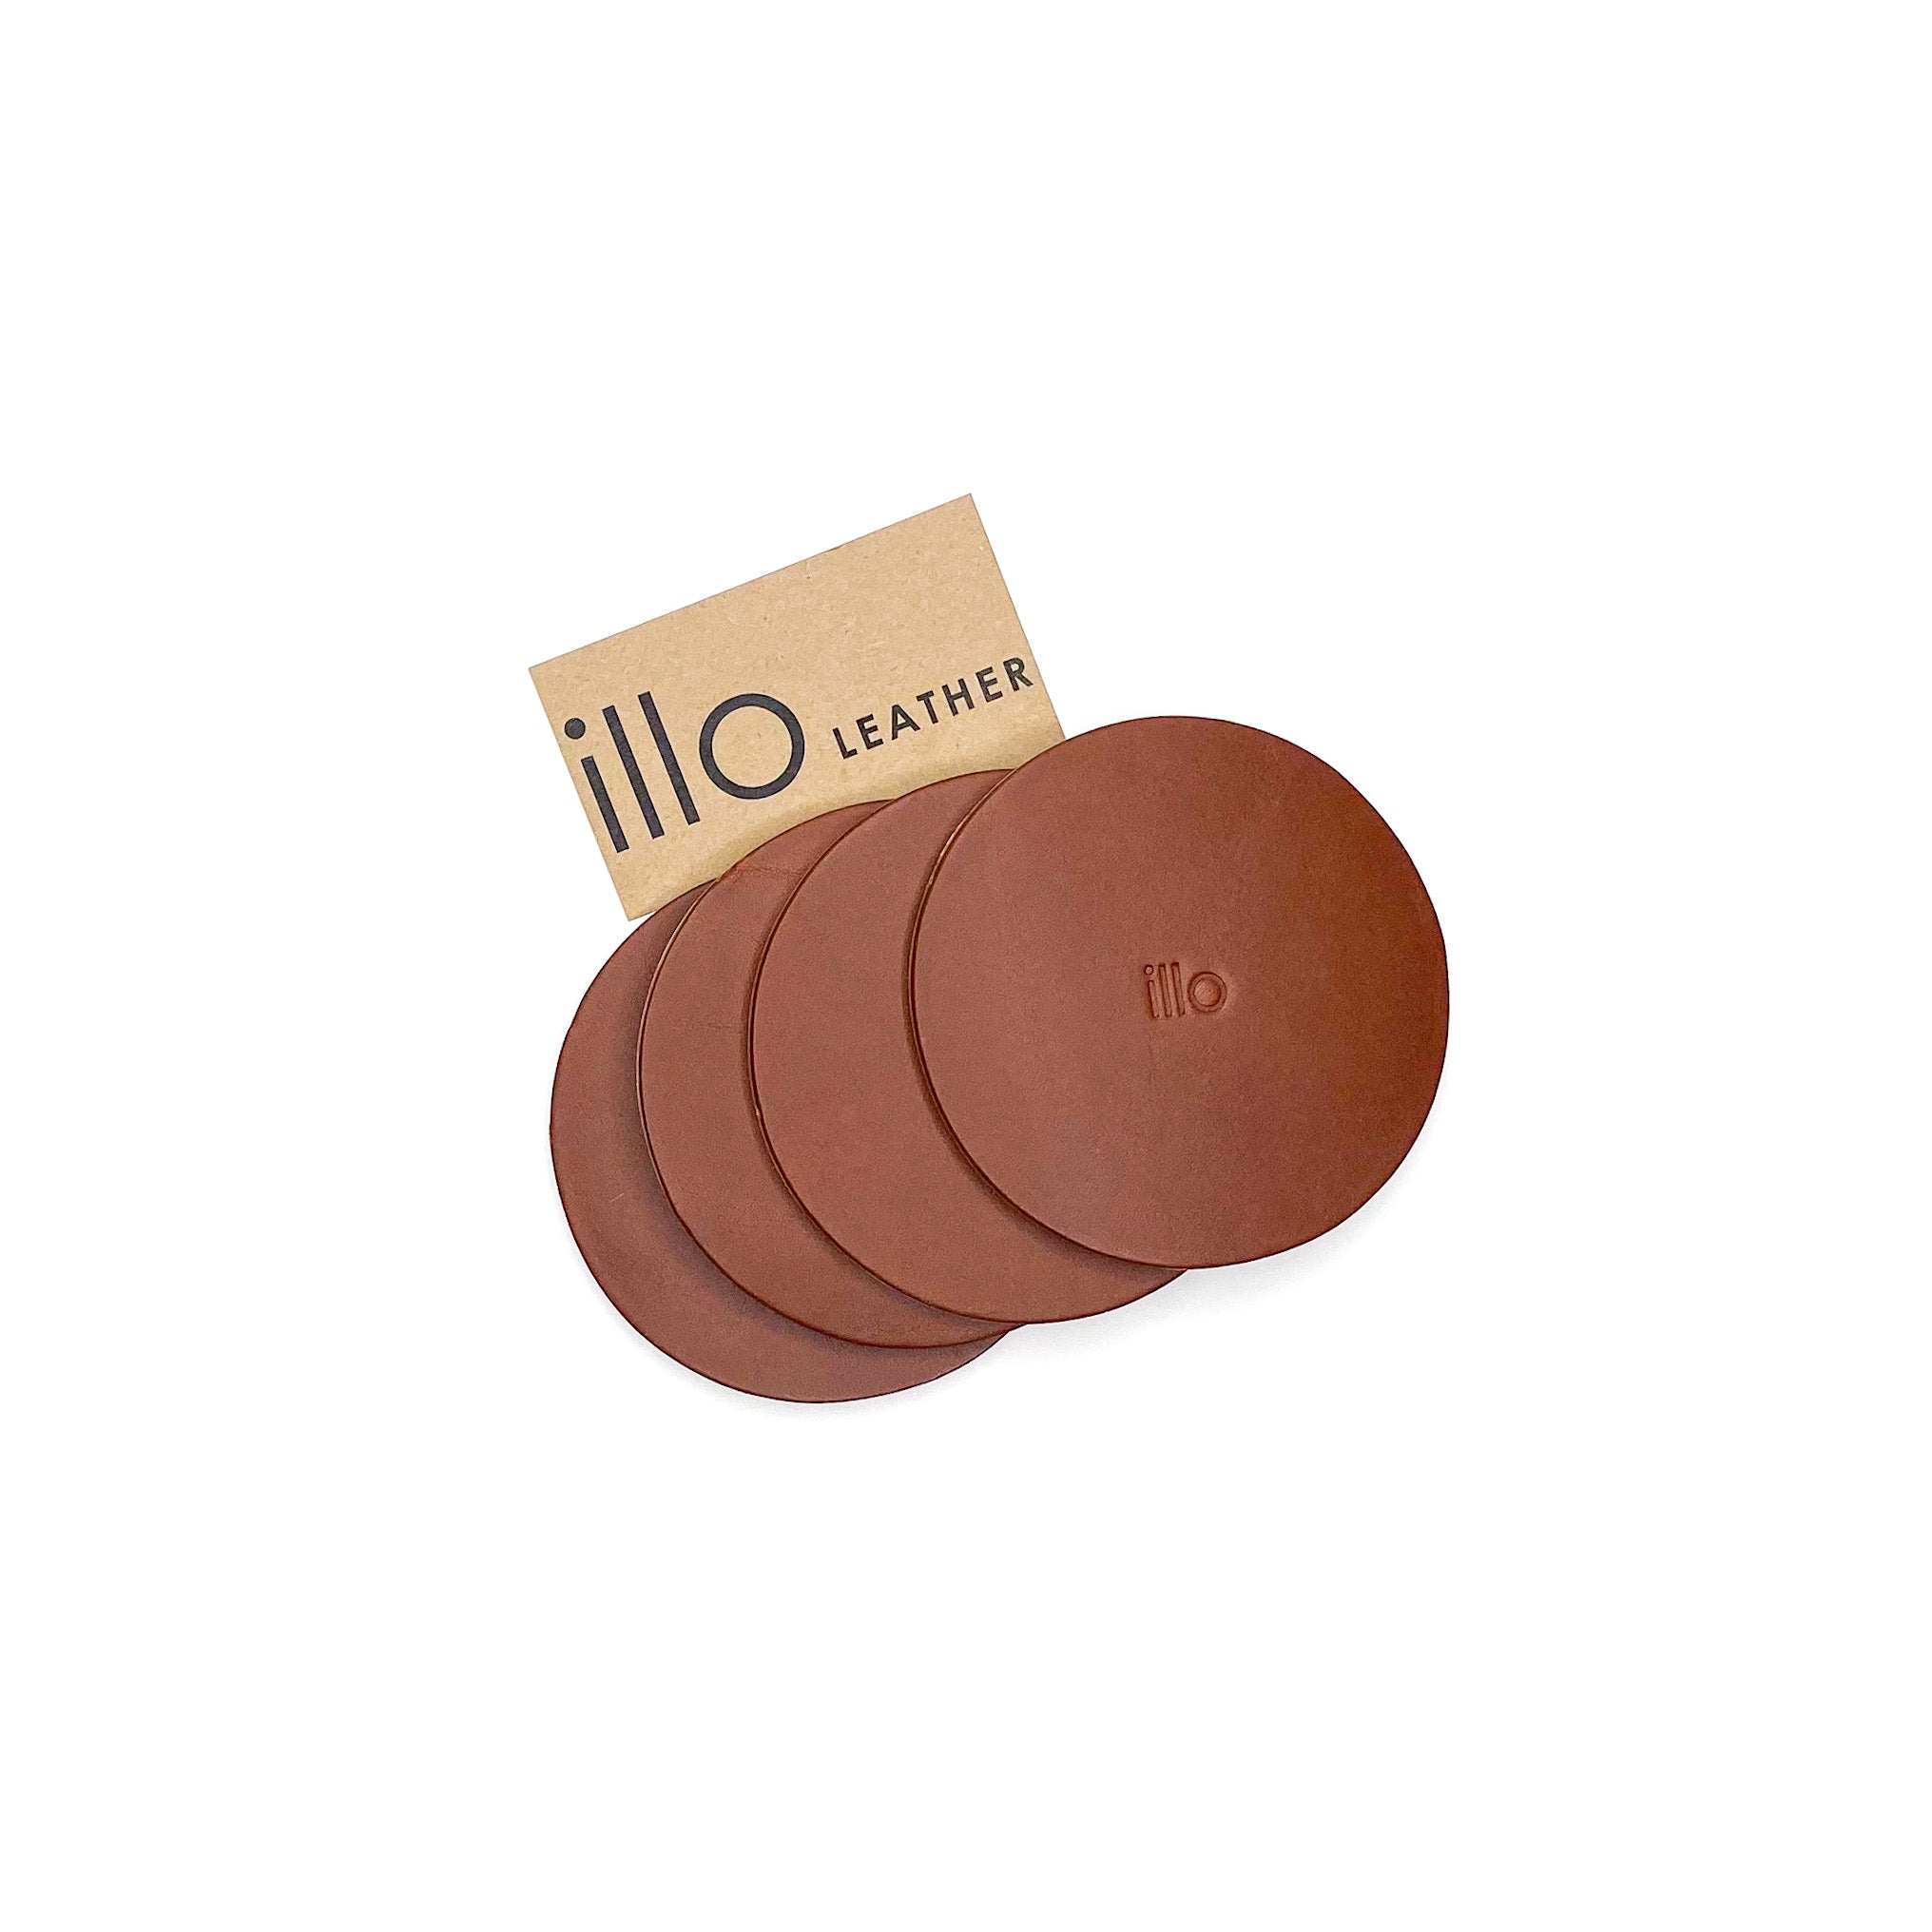 illo Leather Medium Brown Coaster Set of 4